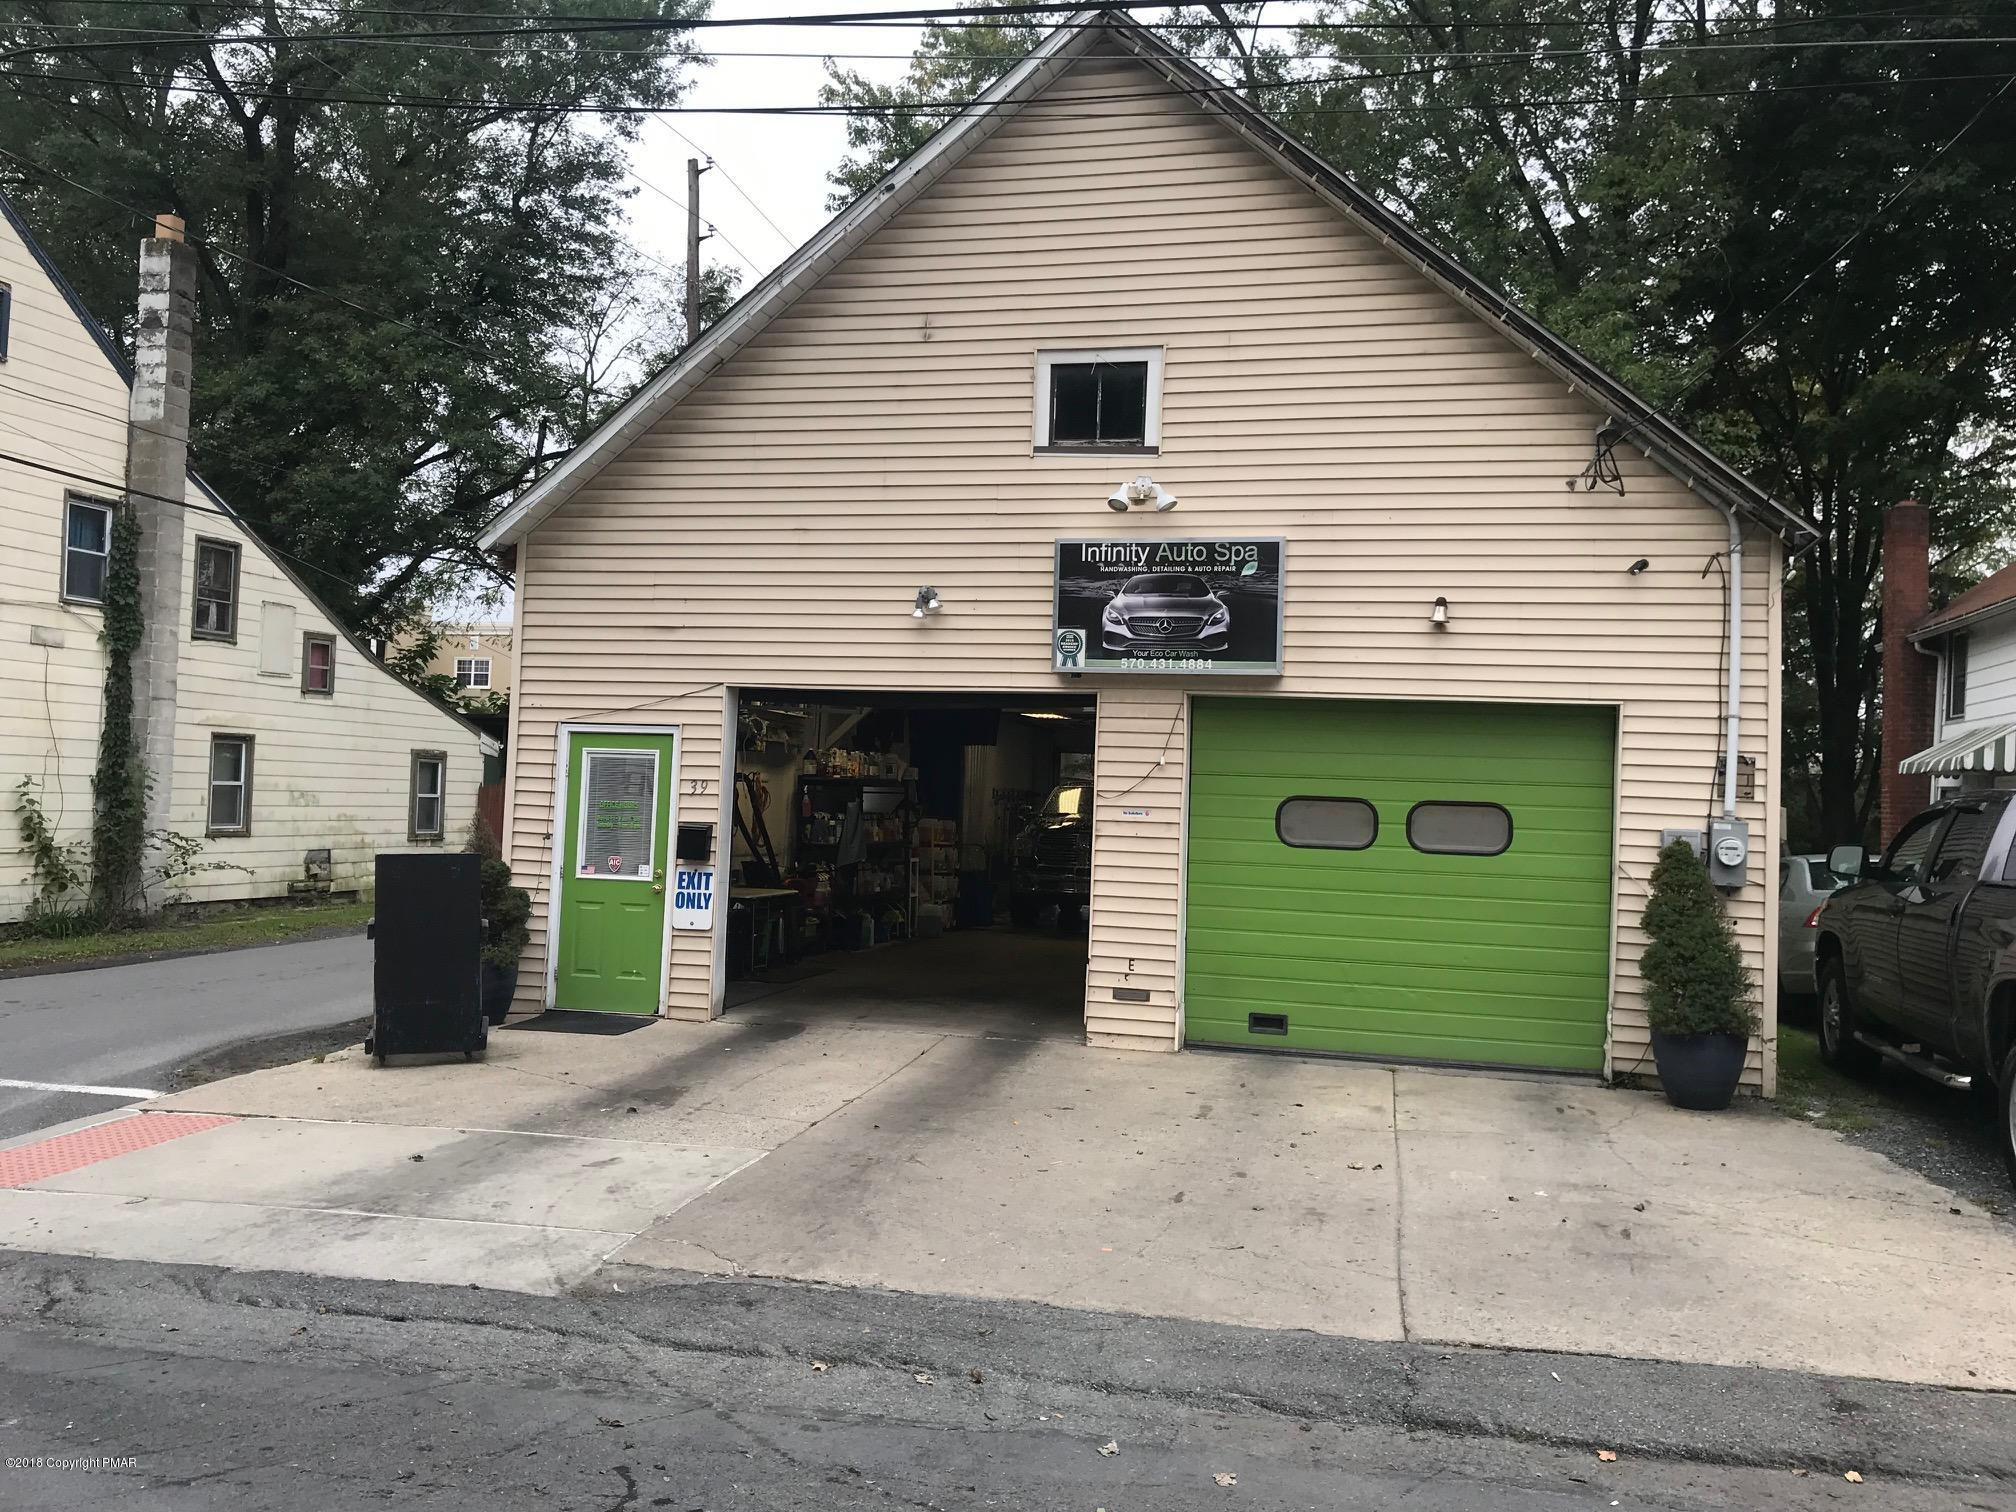 Garage For Rent Easton Pa Search Listing Results Michael Baxter Associates Pocono